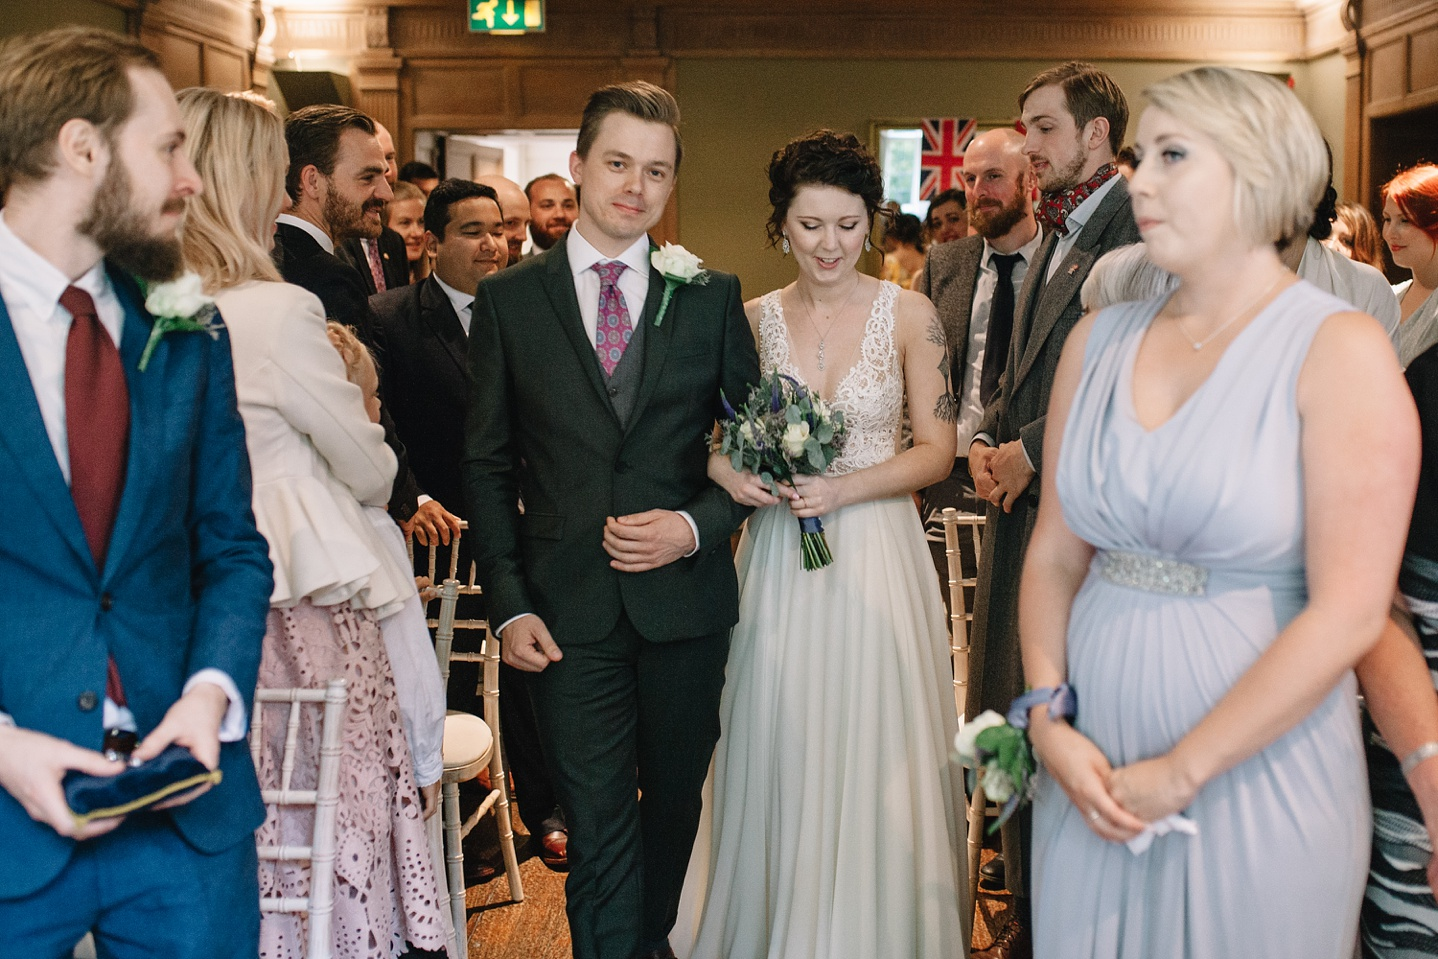 bride and groom walking down the aisle together for the start of the ceremony at Whirlowbrook Hall